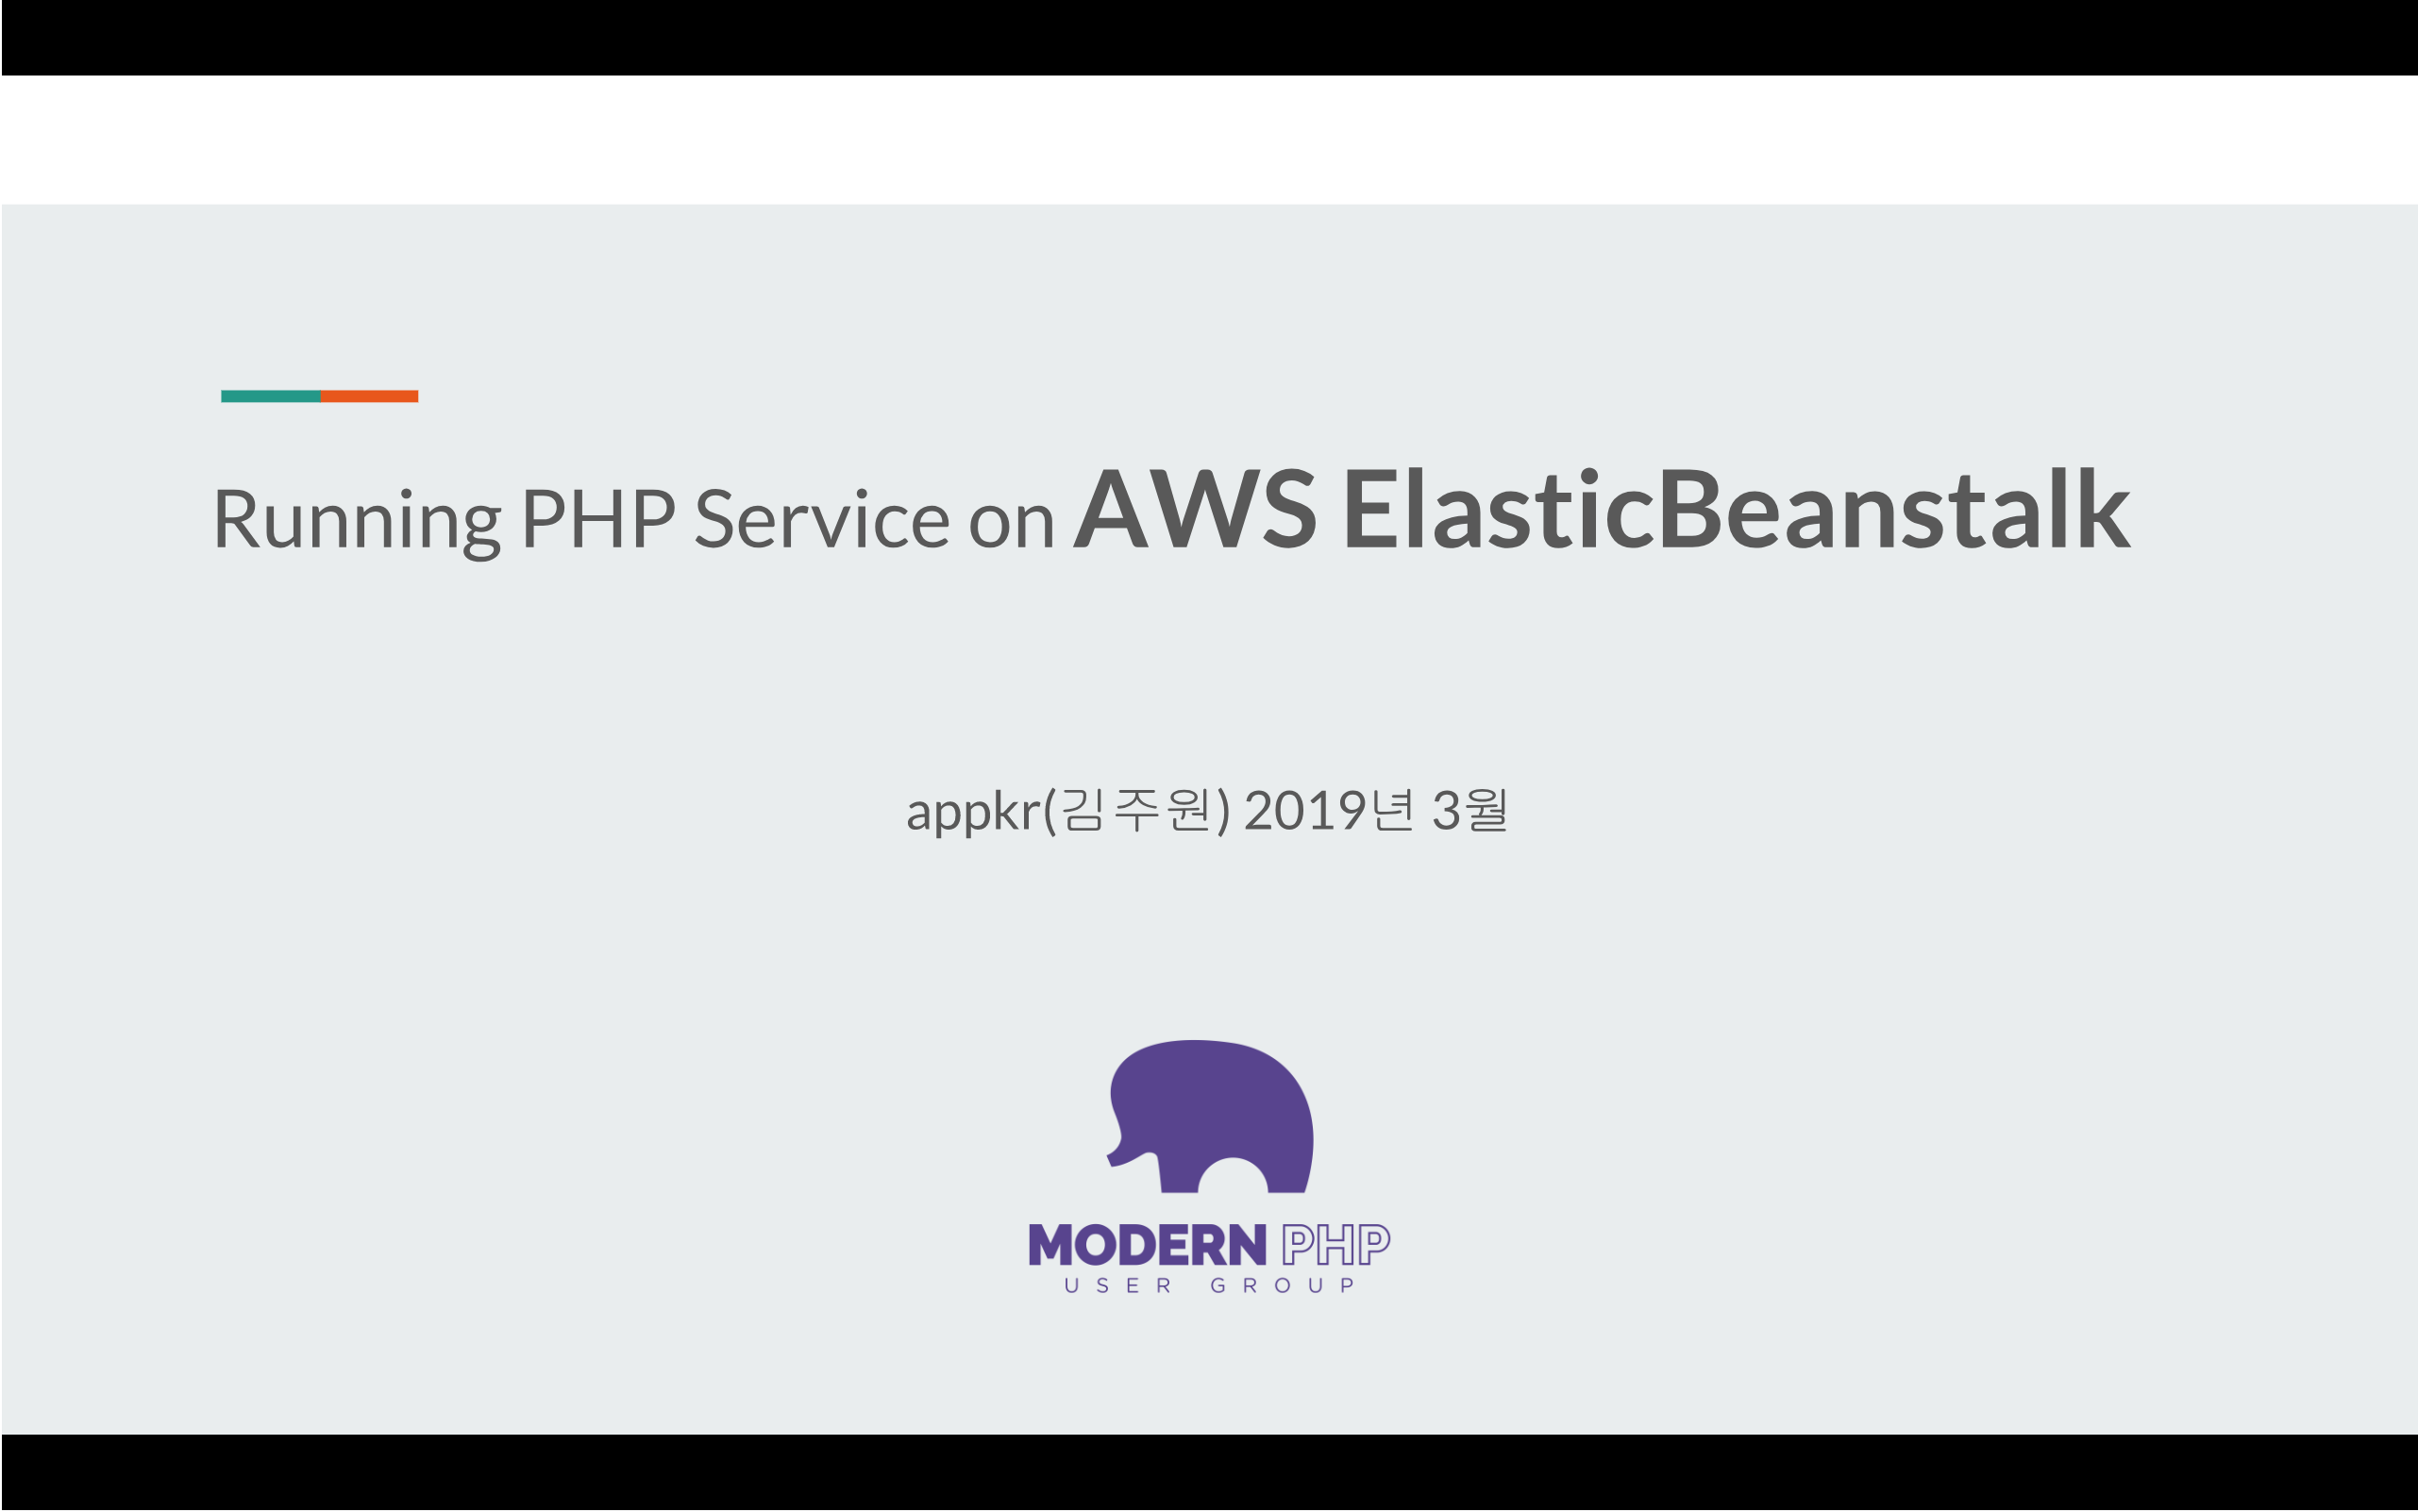 Running PHP Service on AWS ElasticBeanstalk